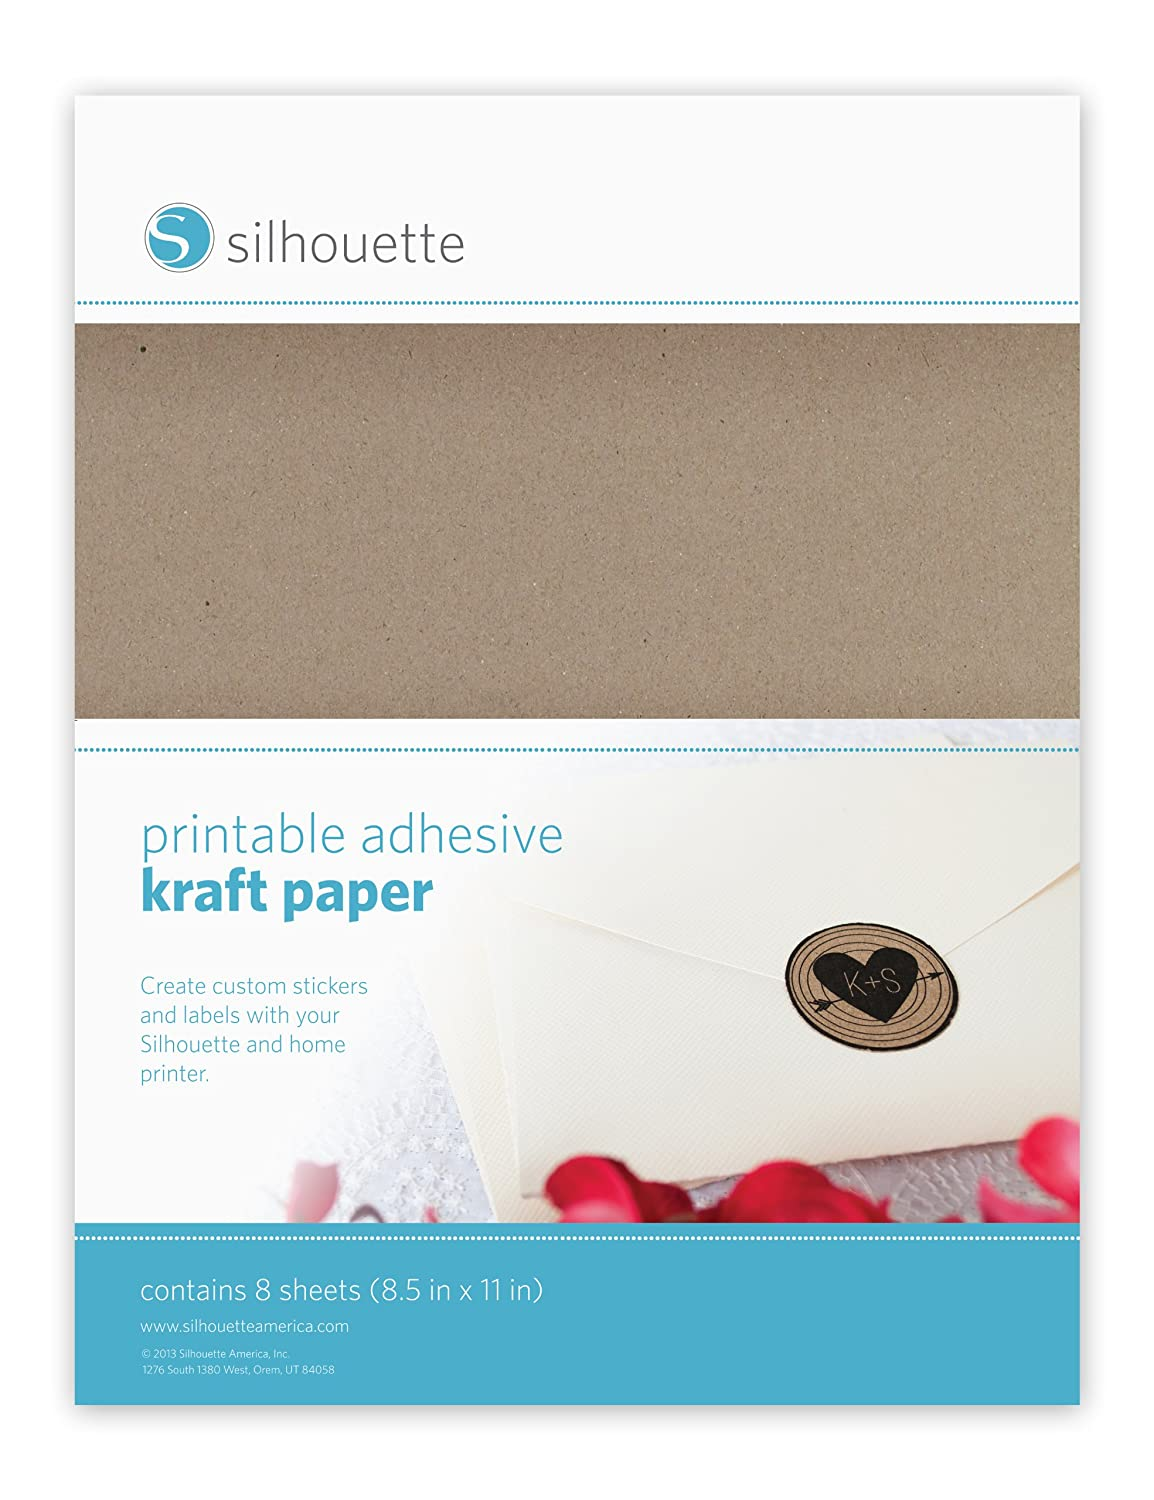 Papel Adhesivo e Imprimible. Silhouette Media-KFT